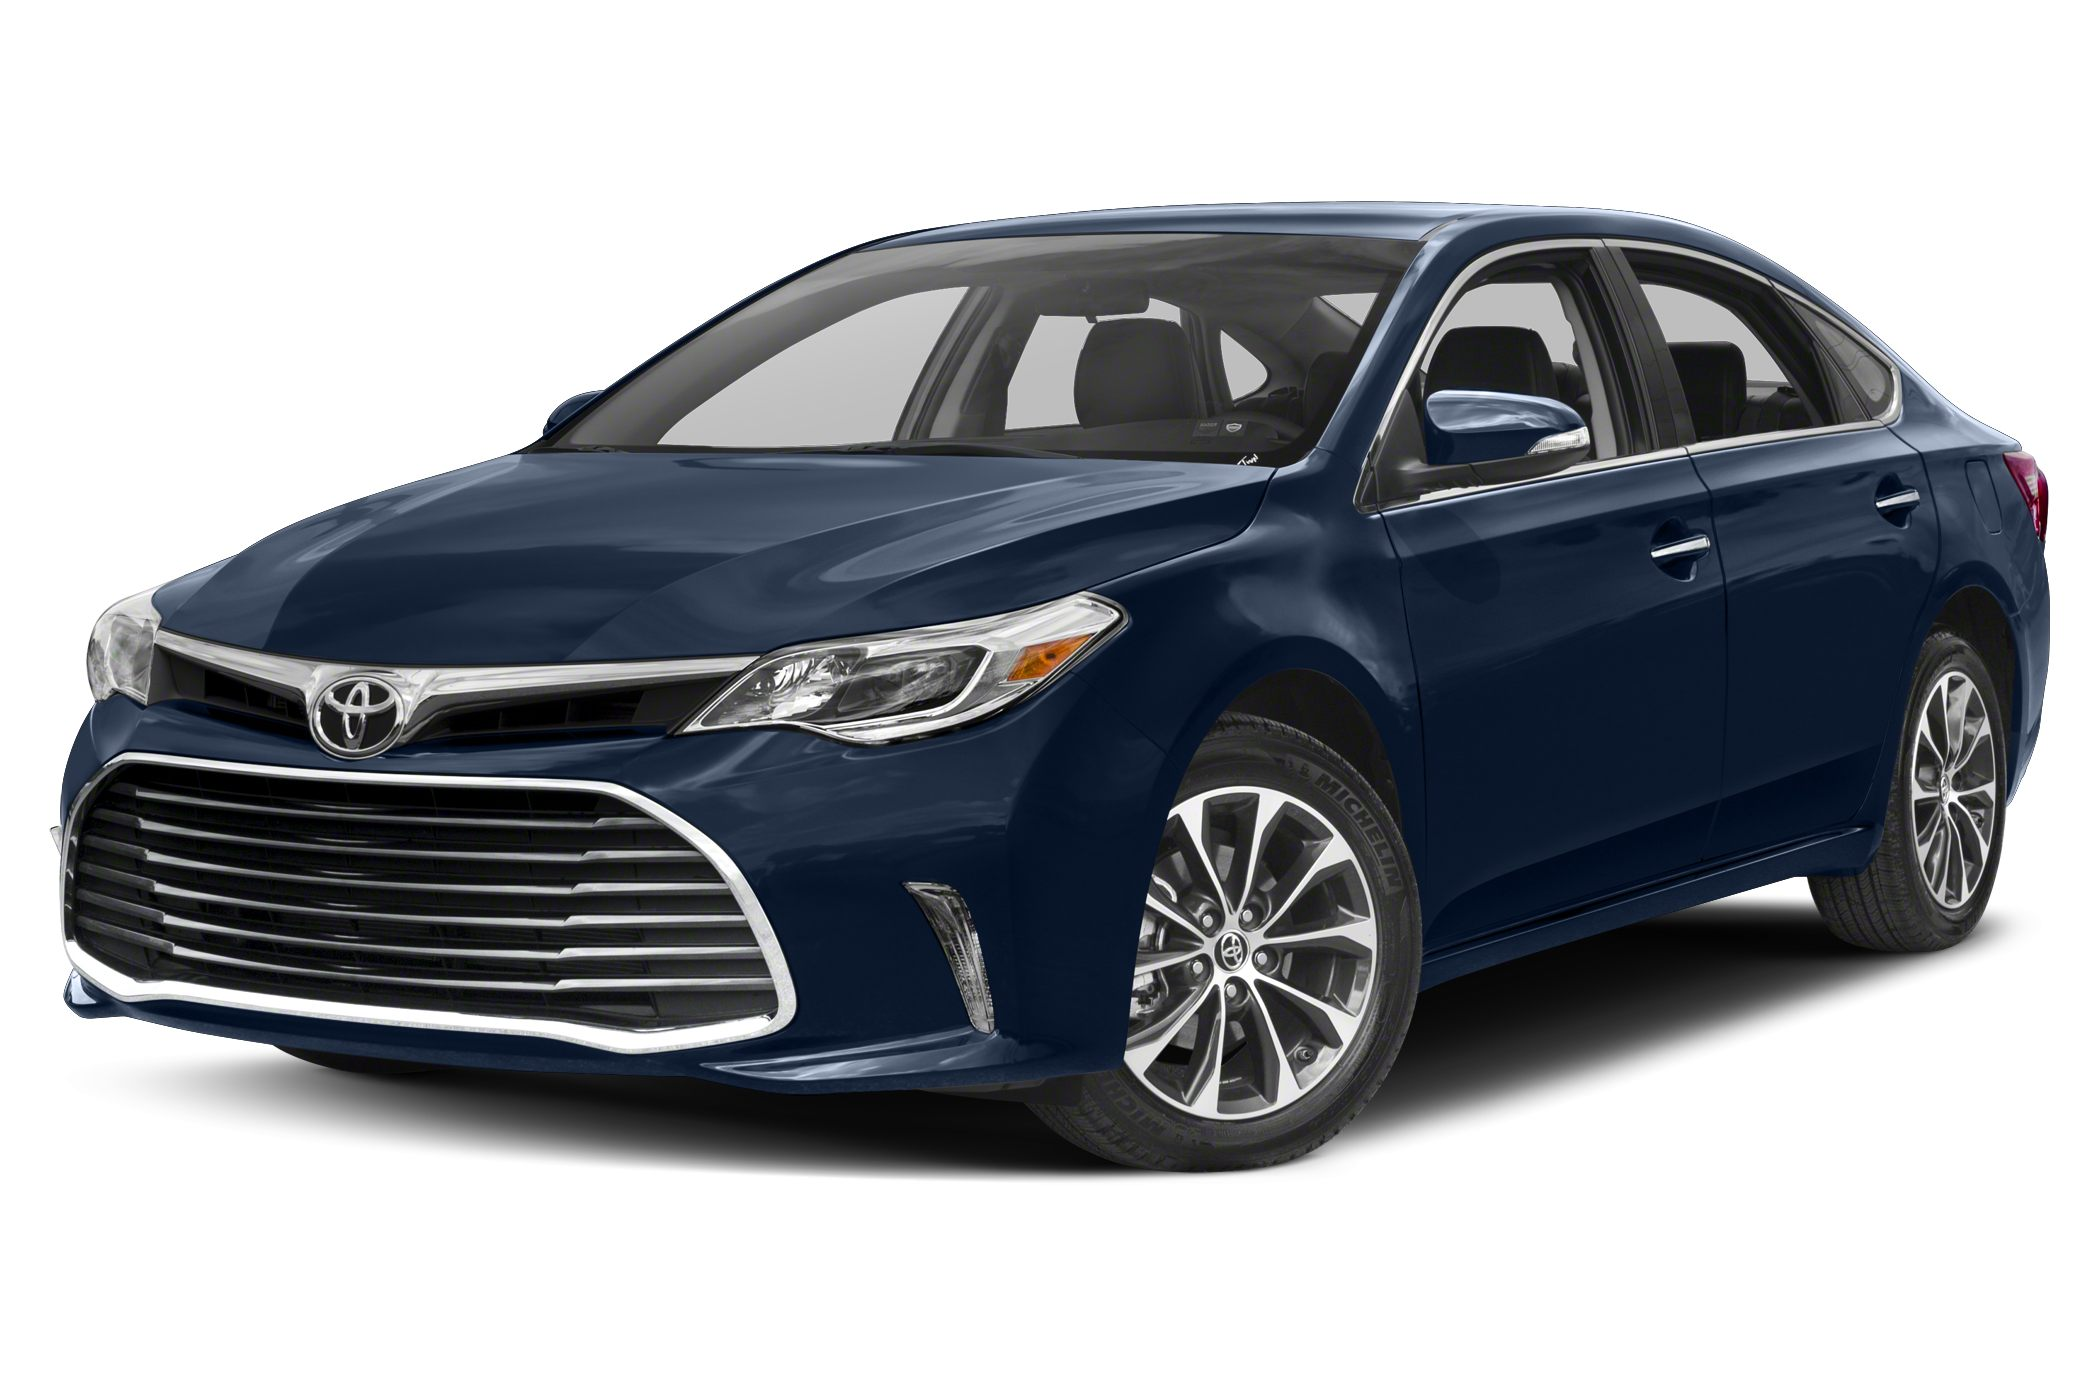 Toyota Certified Pre Owned >> Toyota Avalon News, Photos and Buying Information - Autoblog